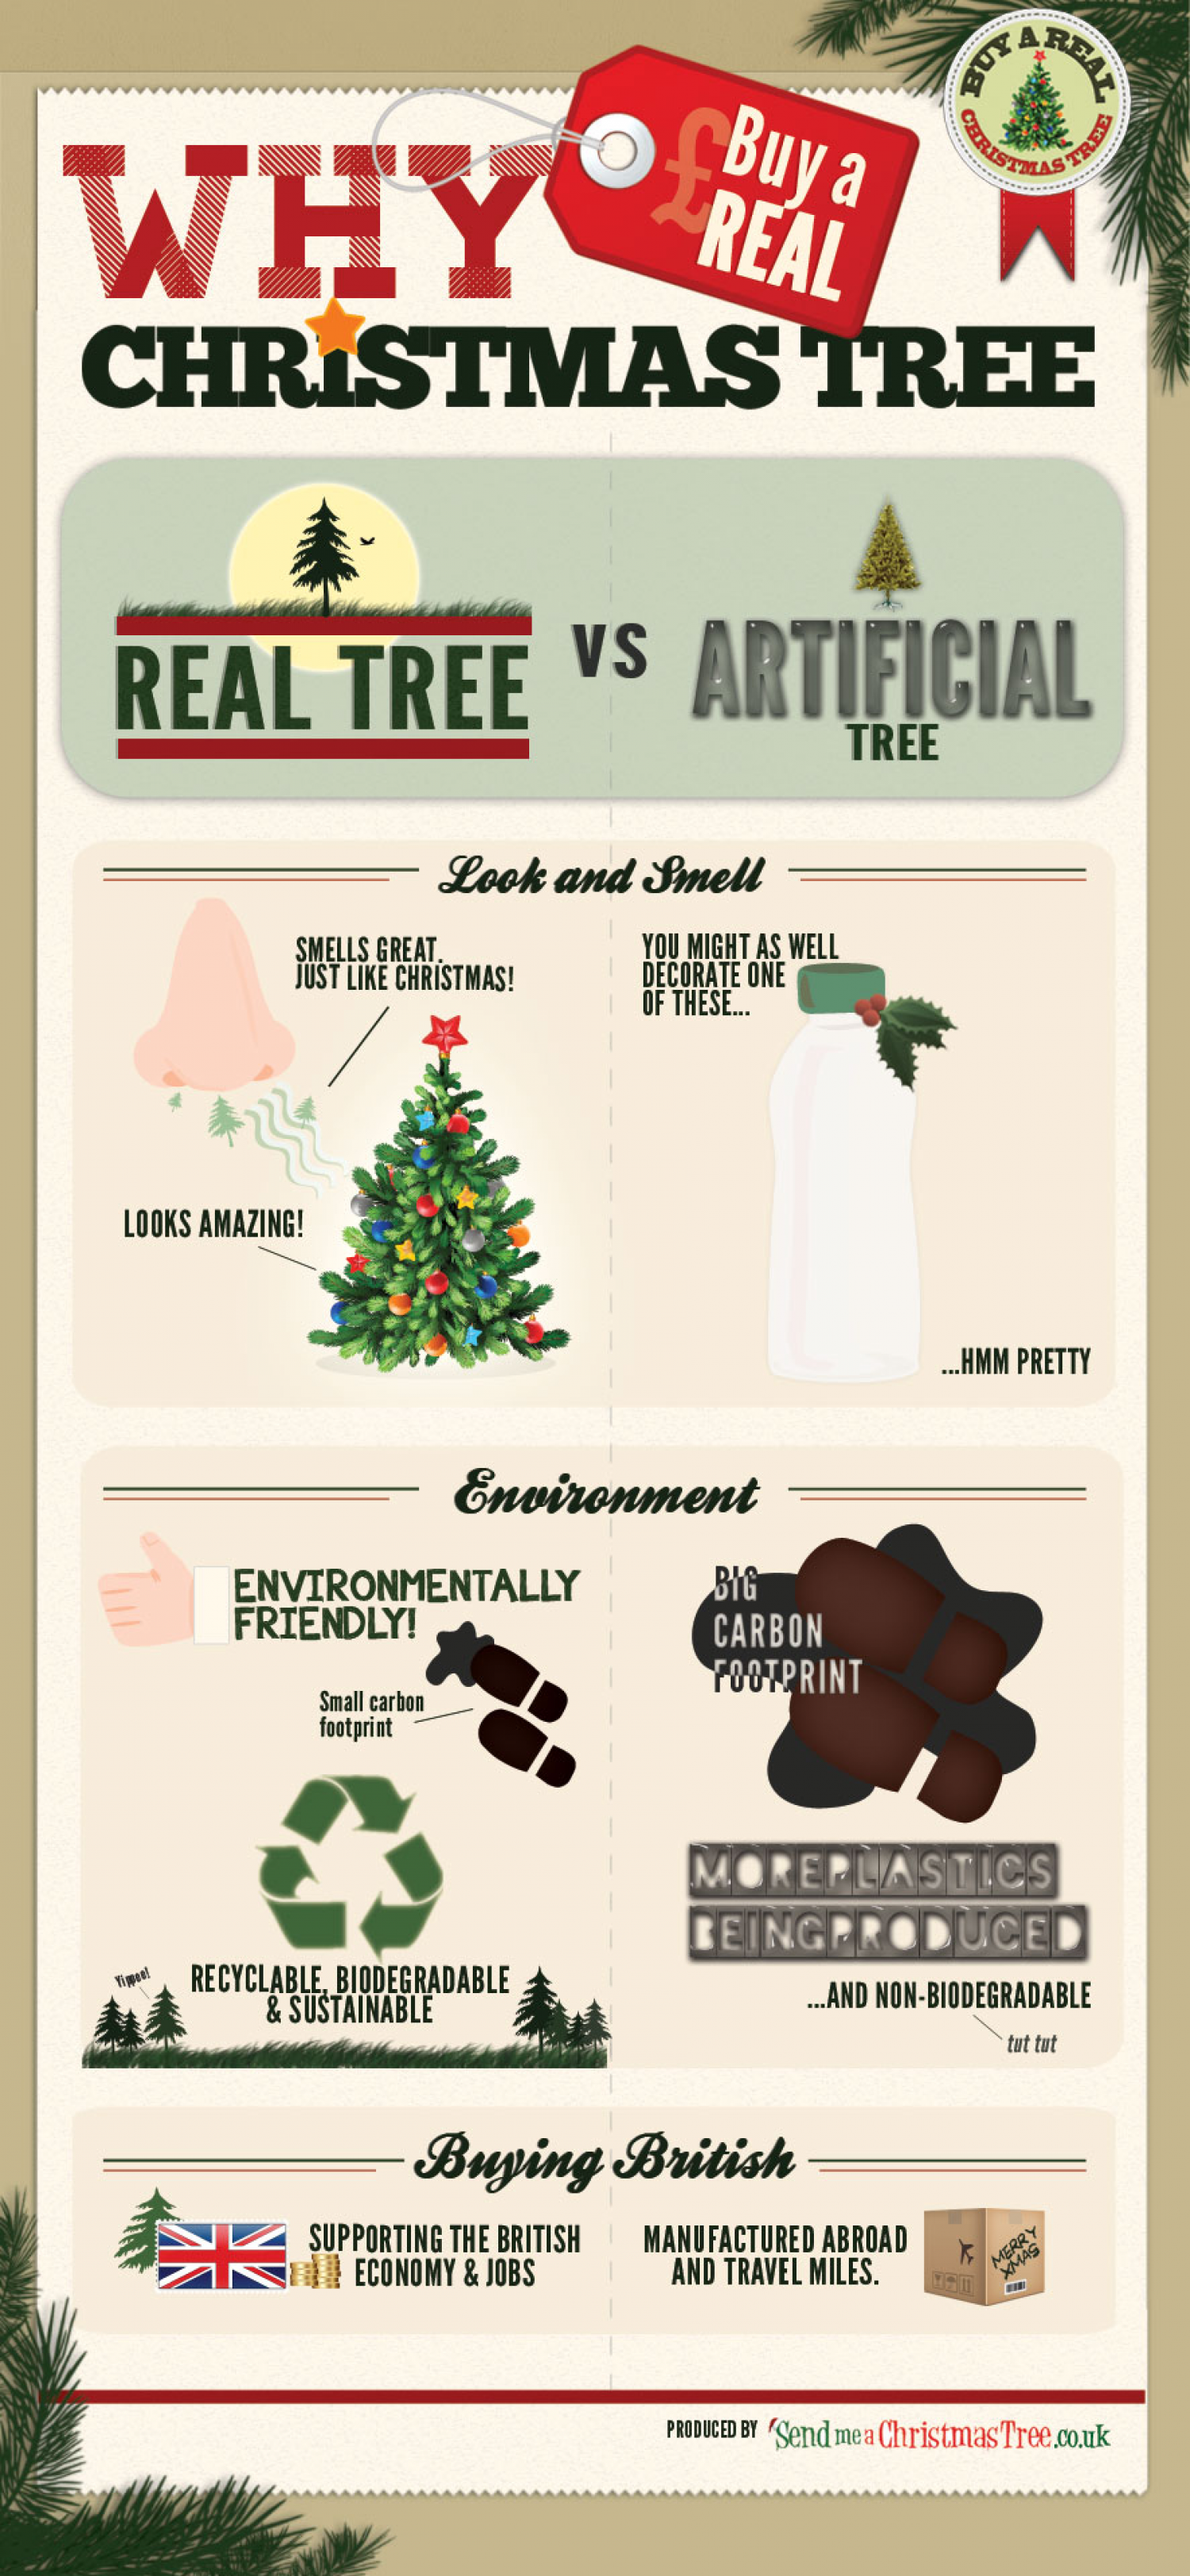 Why buy a real Christmas tree? Infographic